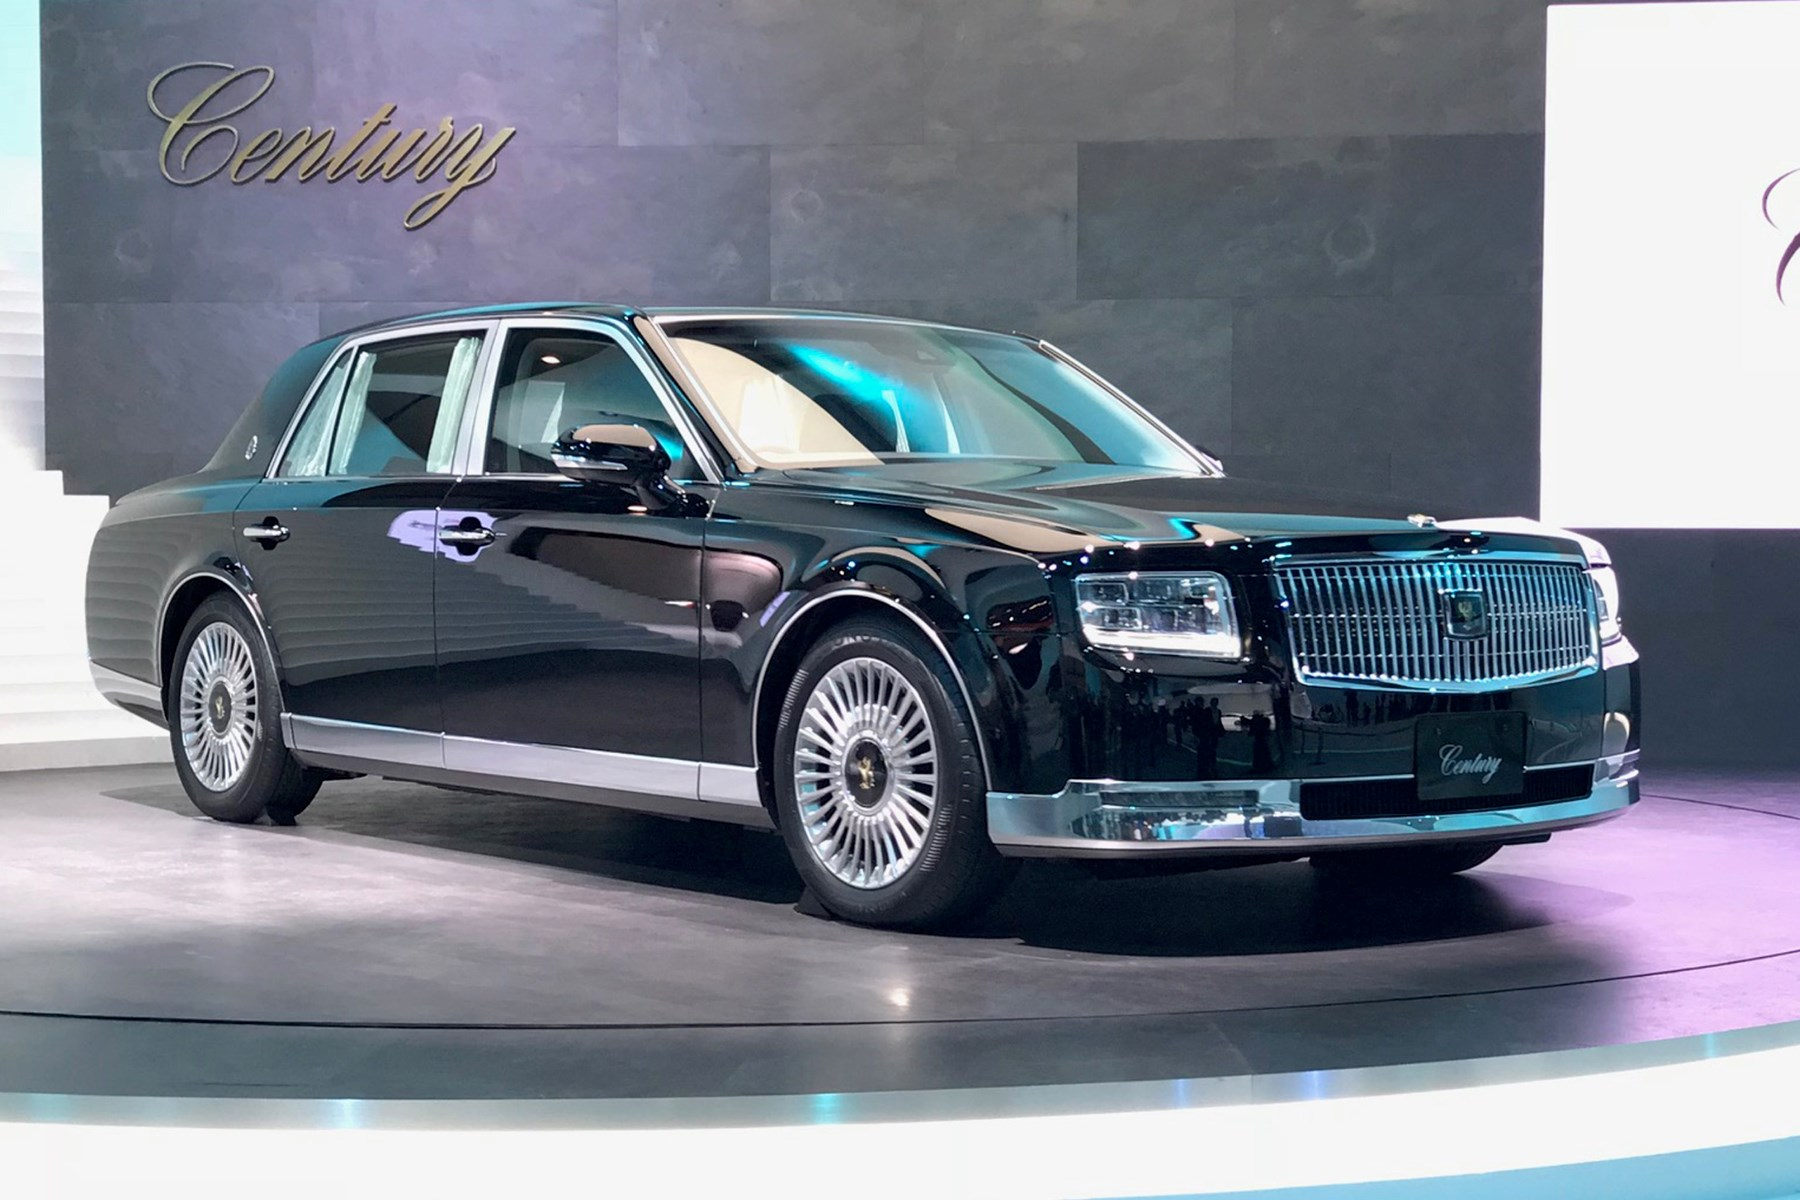 new toyota century limo brings old school class to tokyo 2017 by car magazine. Black Bedroom Furniture Sets. Home Design Ideas